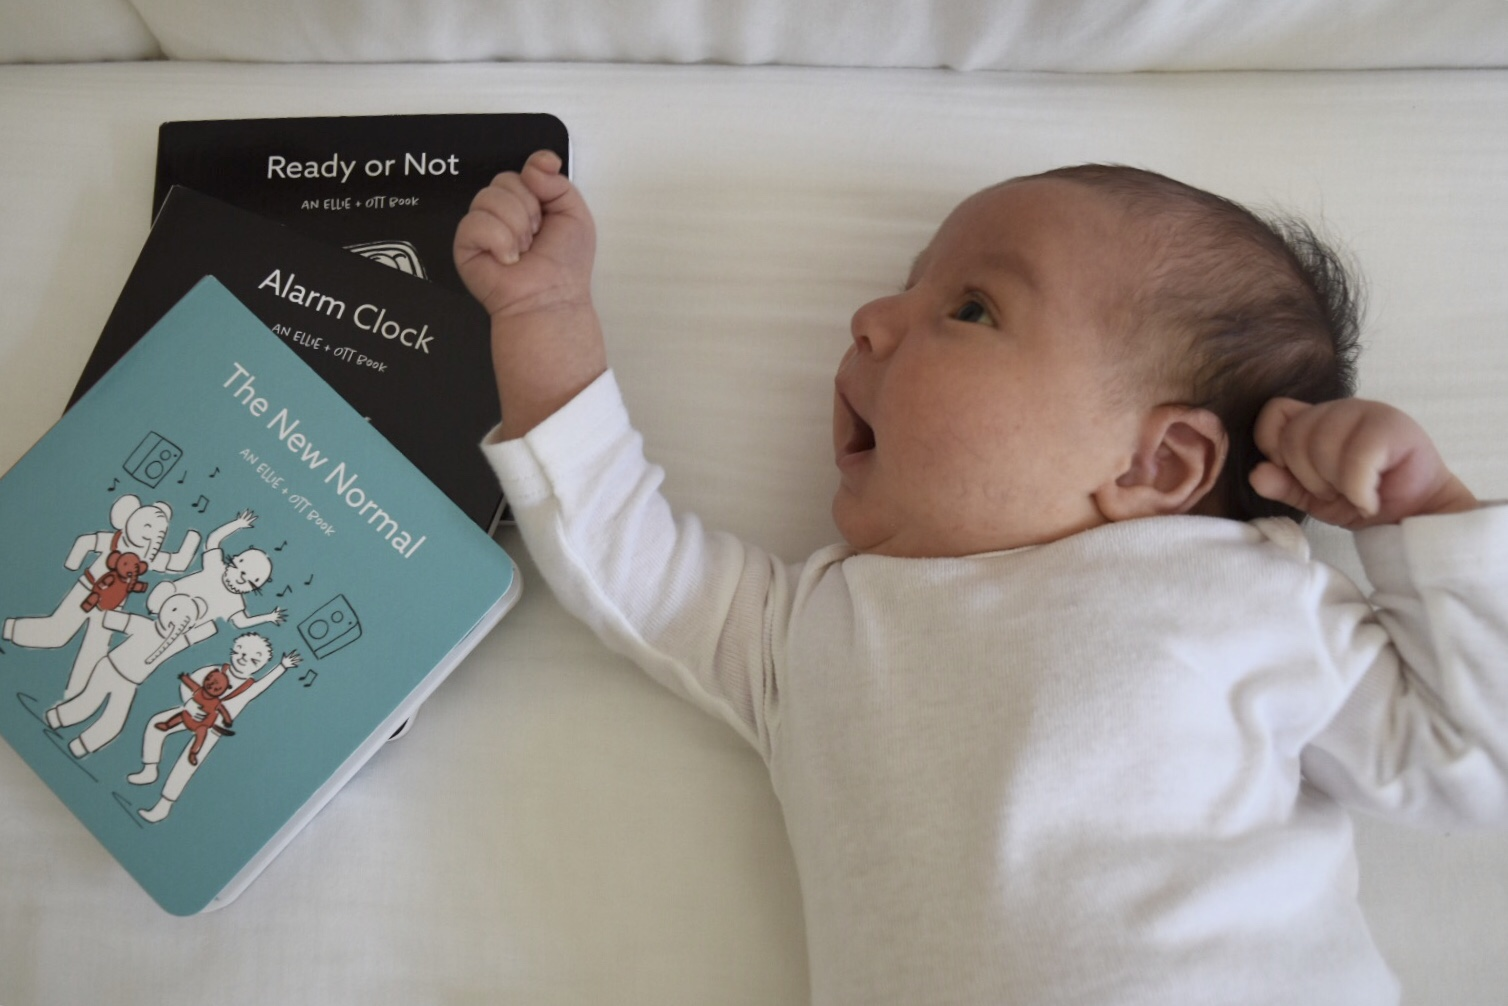 Little Max Gharibian snuggled up in a white onesie with his new board books from Ellie + Ott: Ready or Not, Alarm Clock, and The New Normal